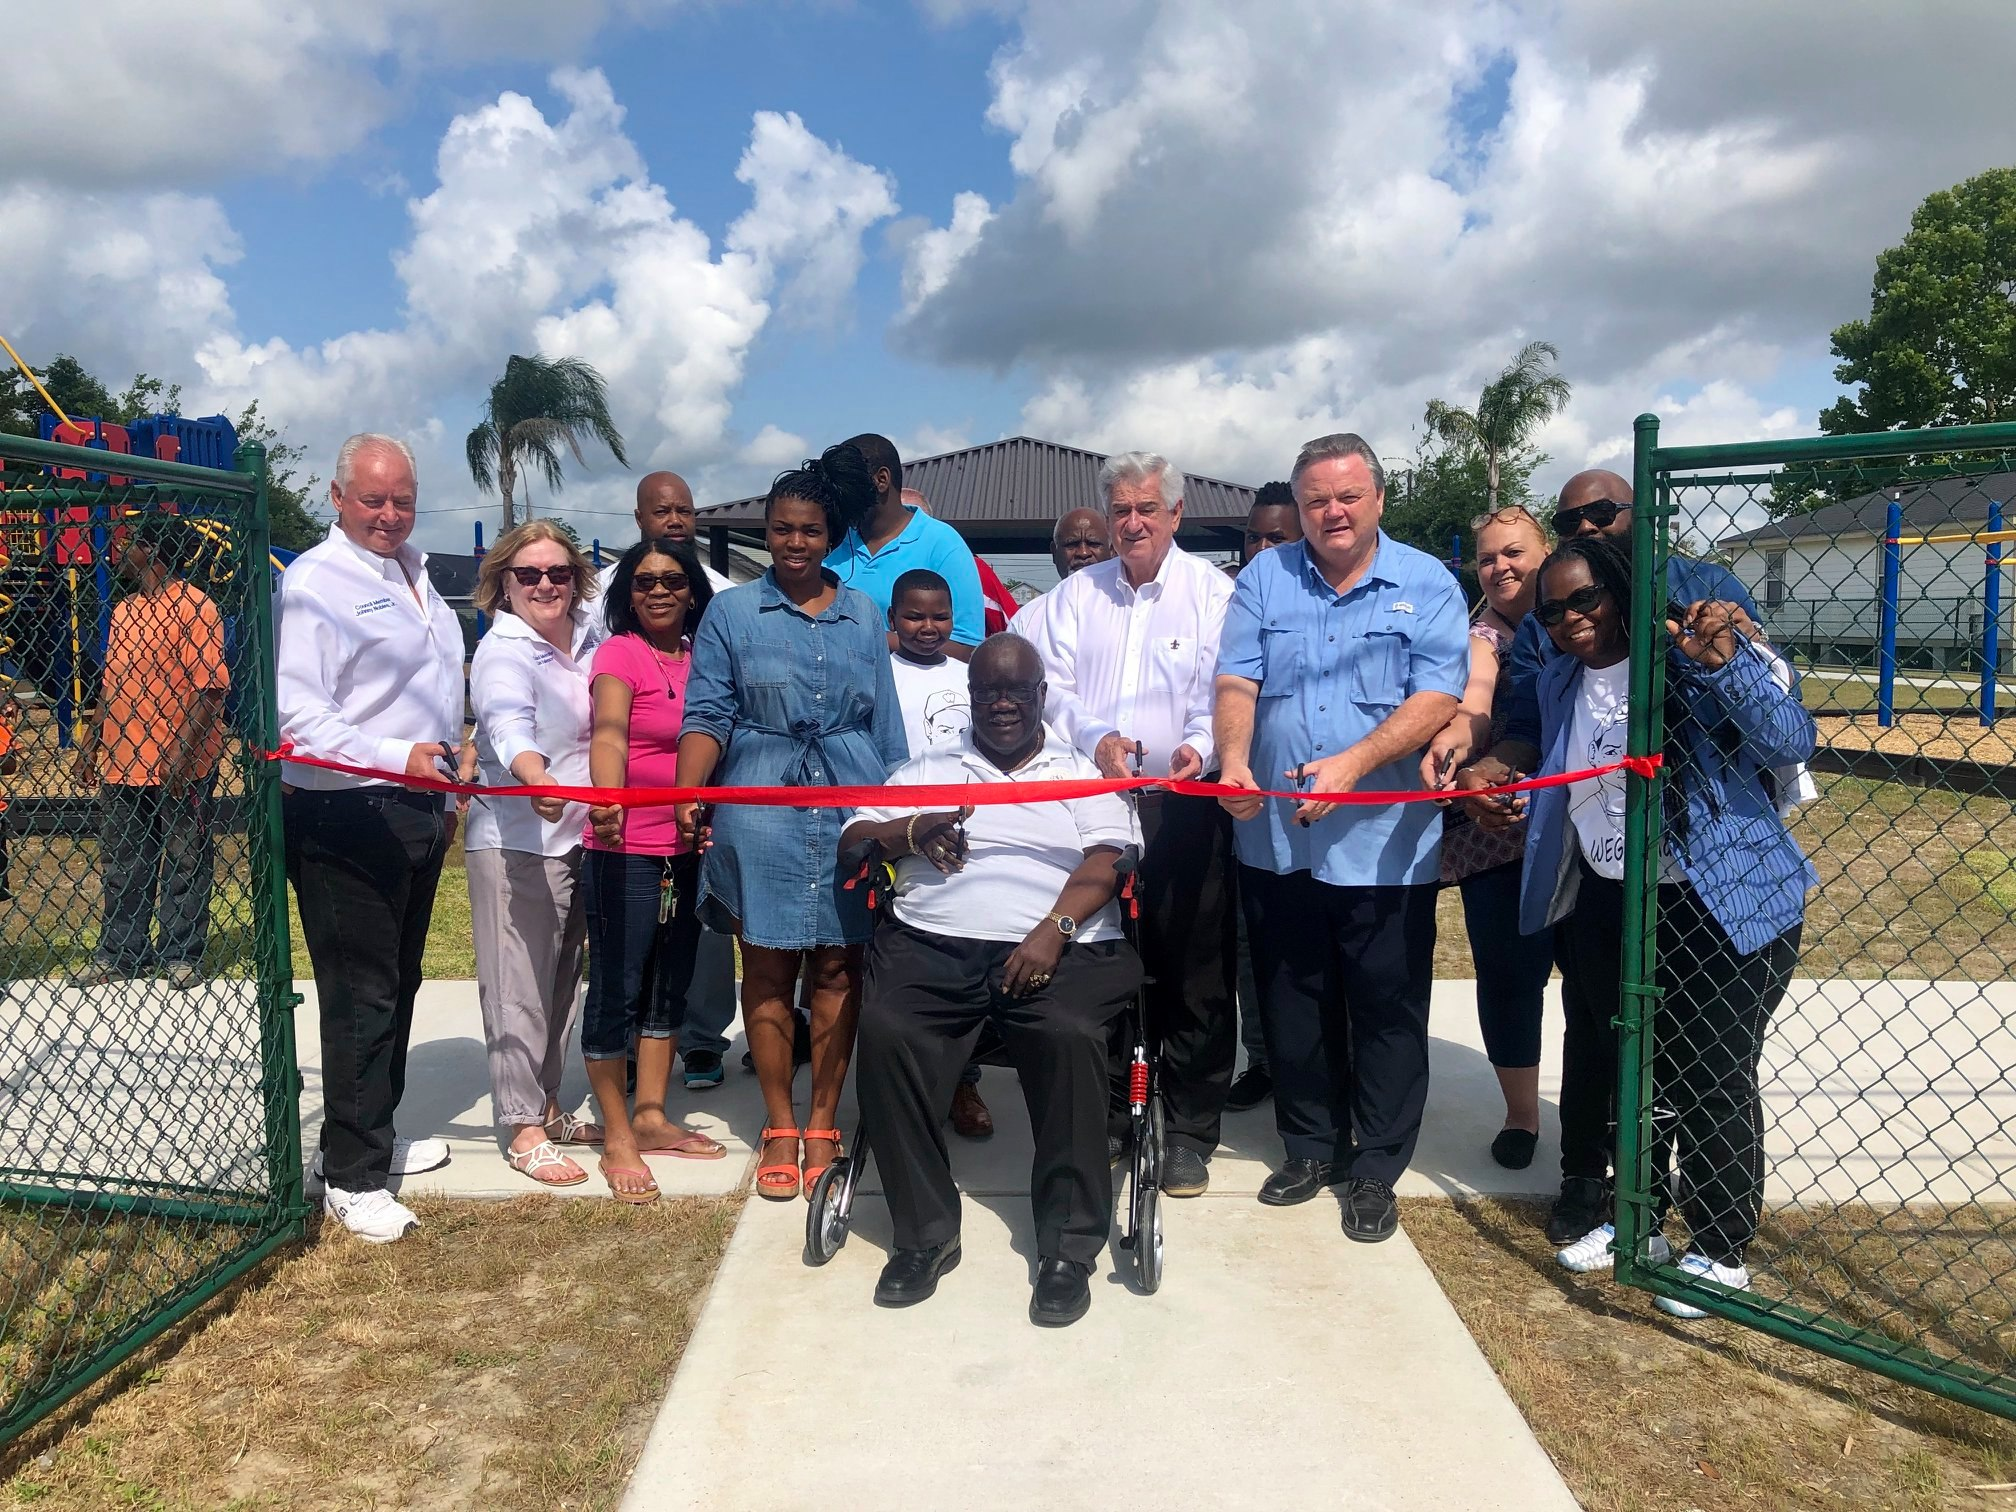 Dedication of Christian Jones Park May 18, 2019